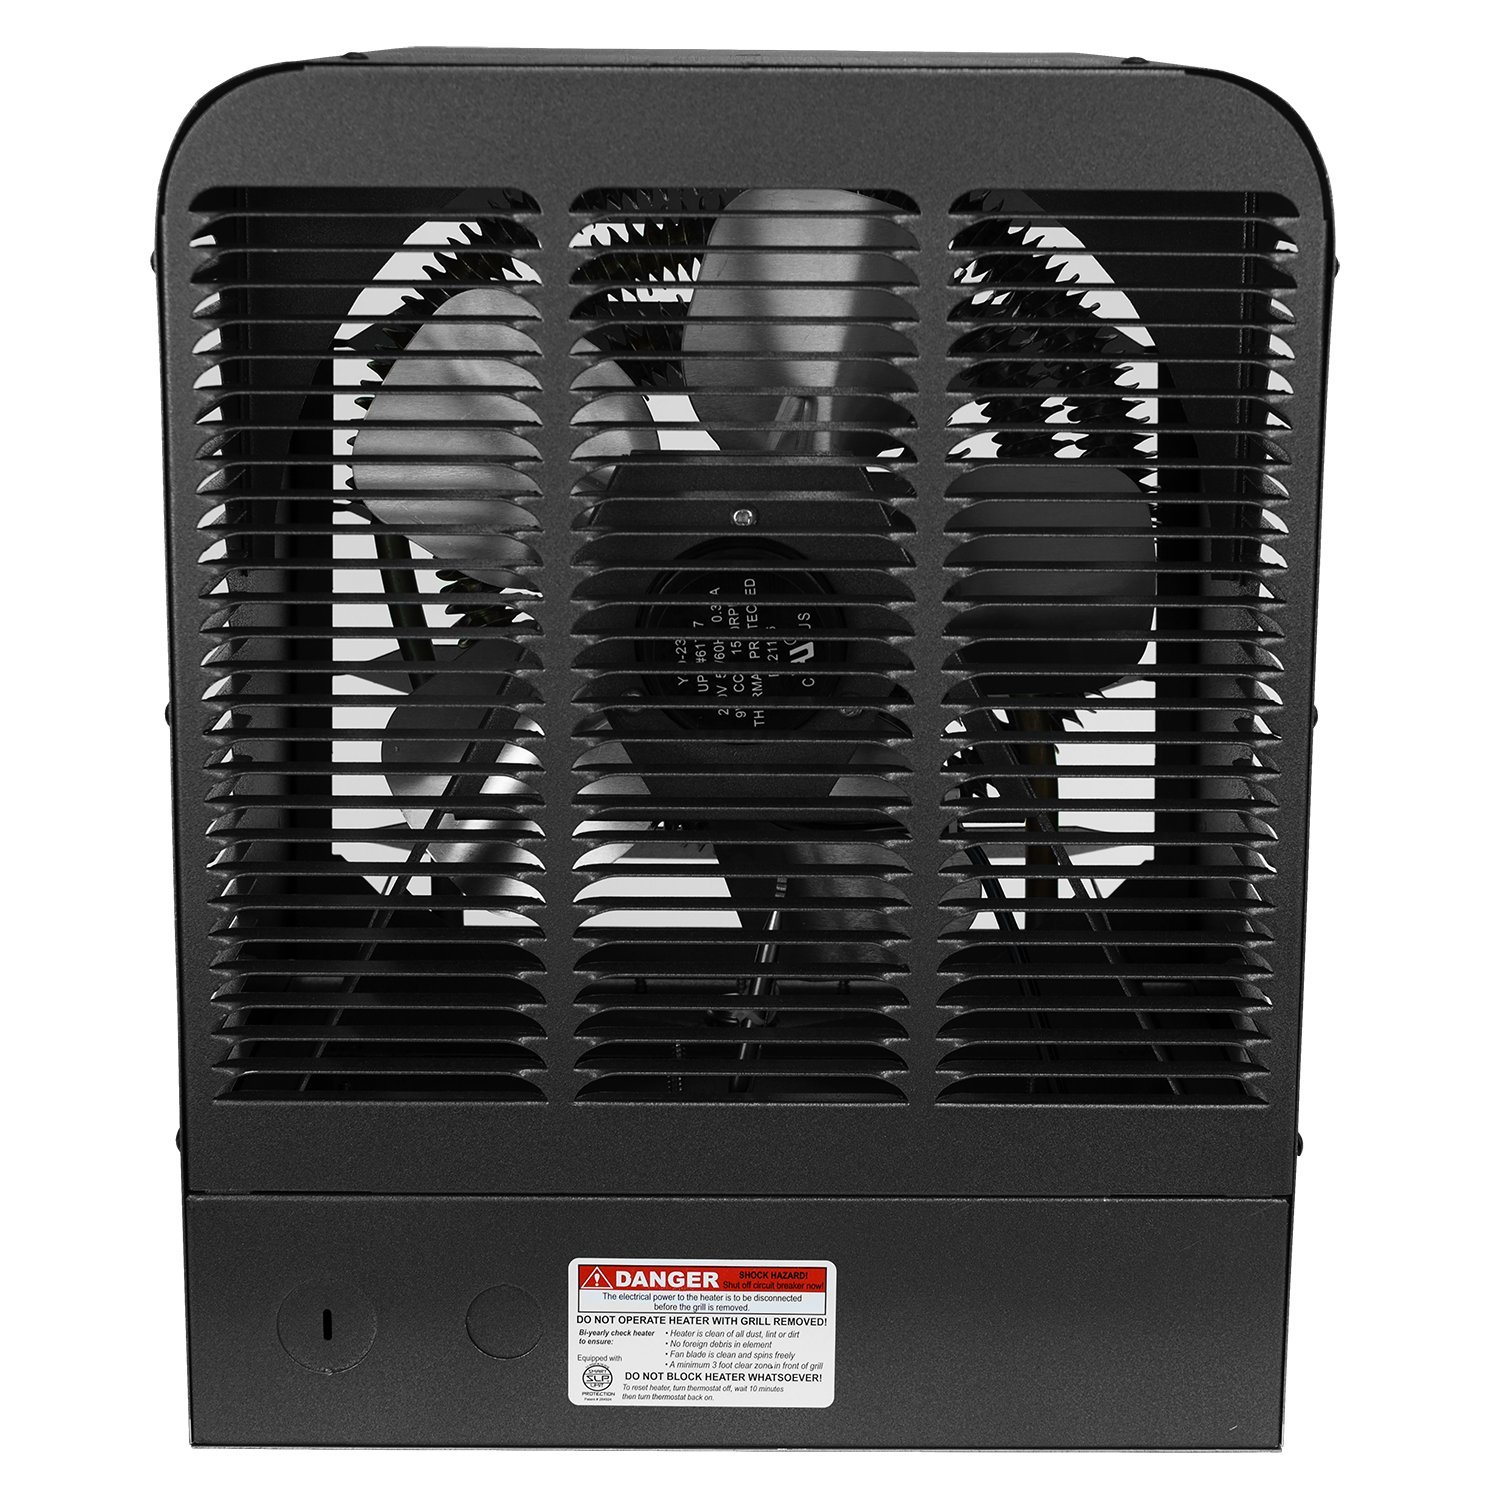 King Electric GH2405TB 240V 5000W Garage Heater with Bracket and Thermostat, Gray by King Electric (Image #3)